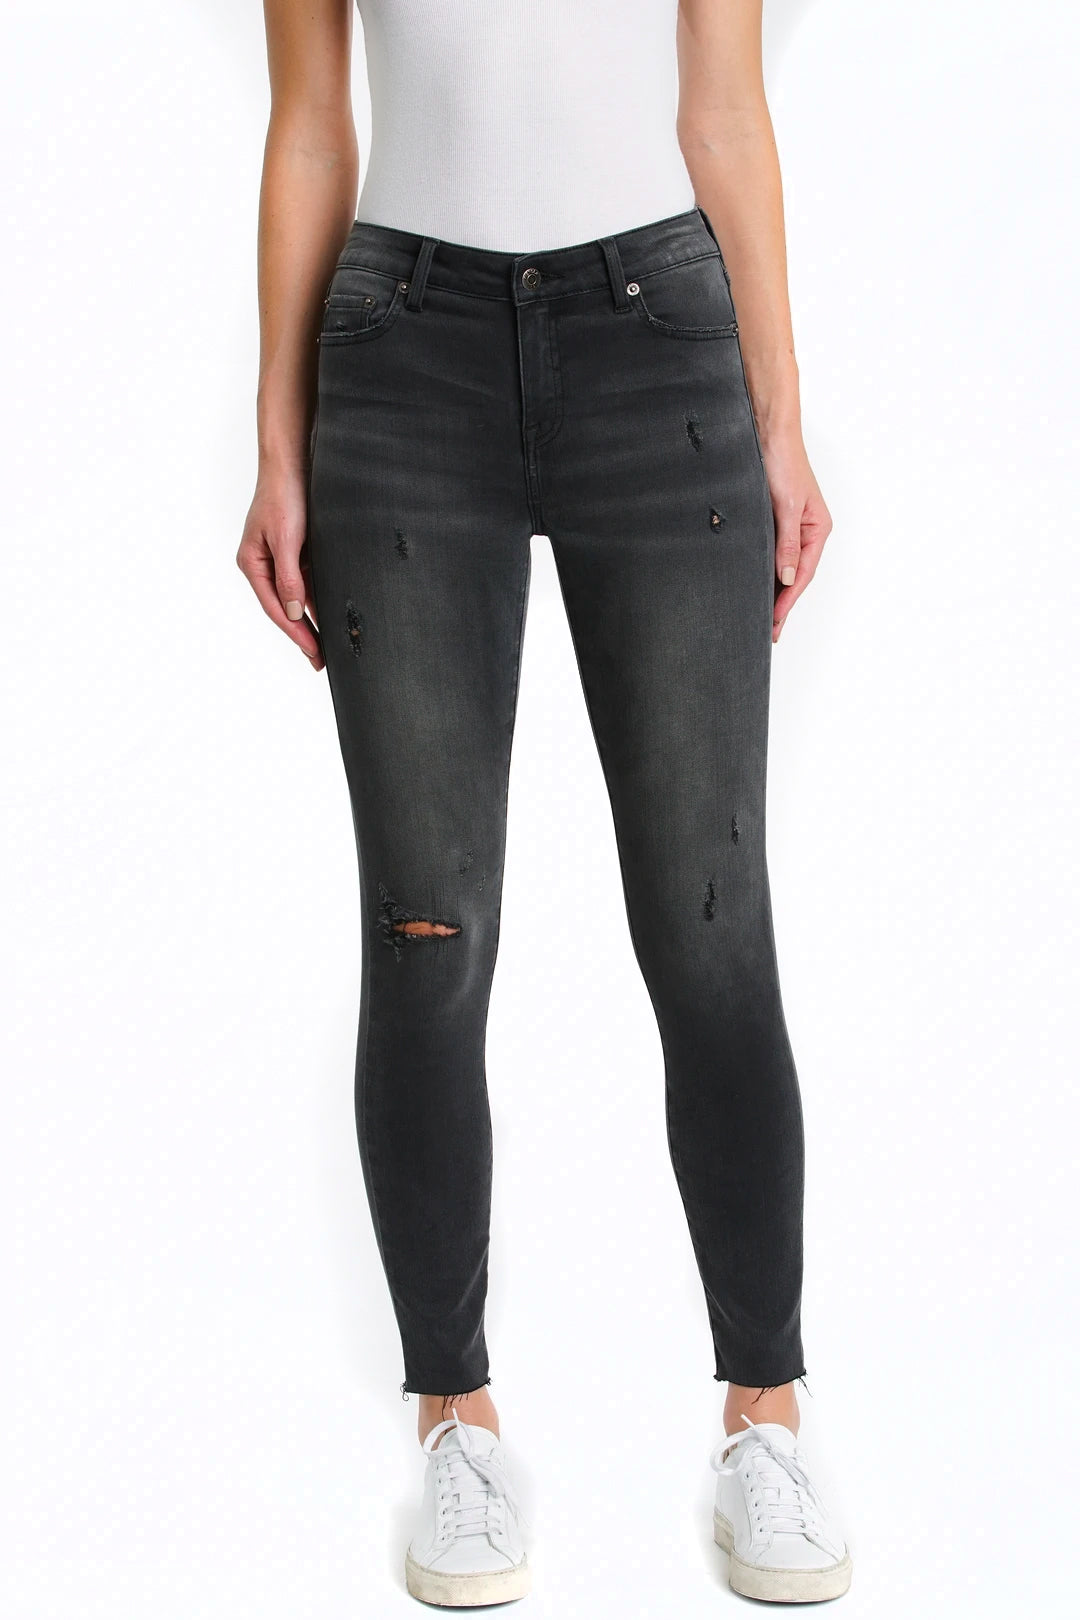 Audrey Mid Rise Skinny - Libson